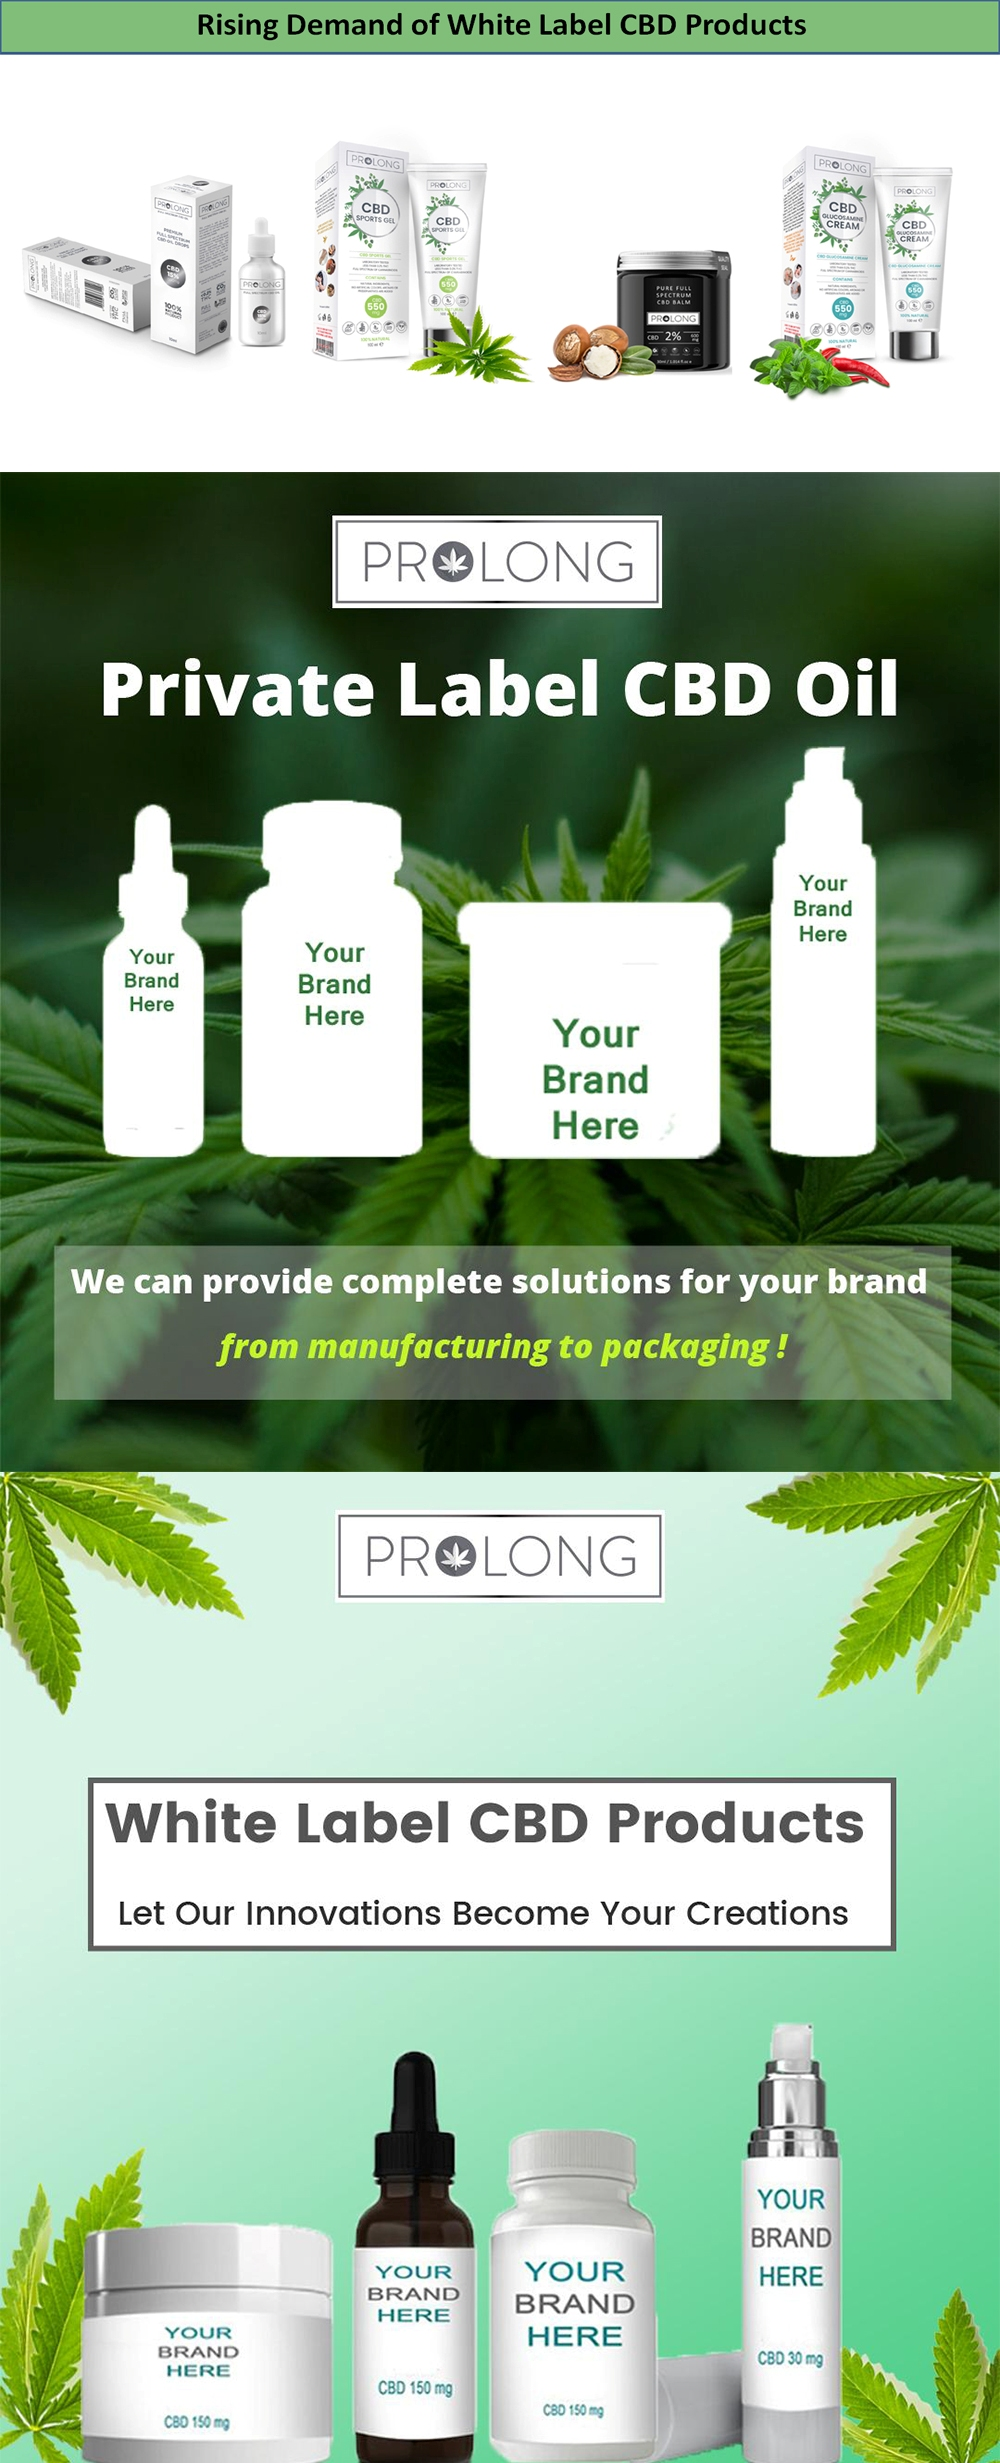 Rising Demand of White Label CBD Products